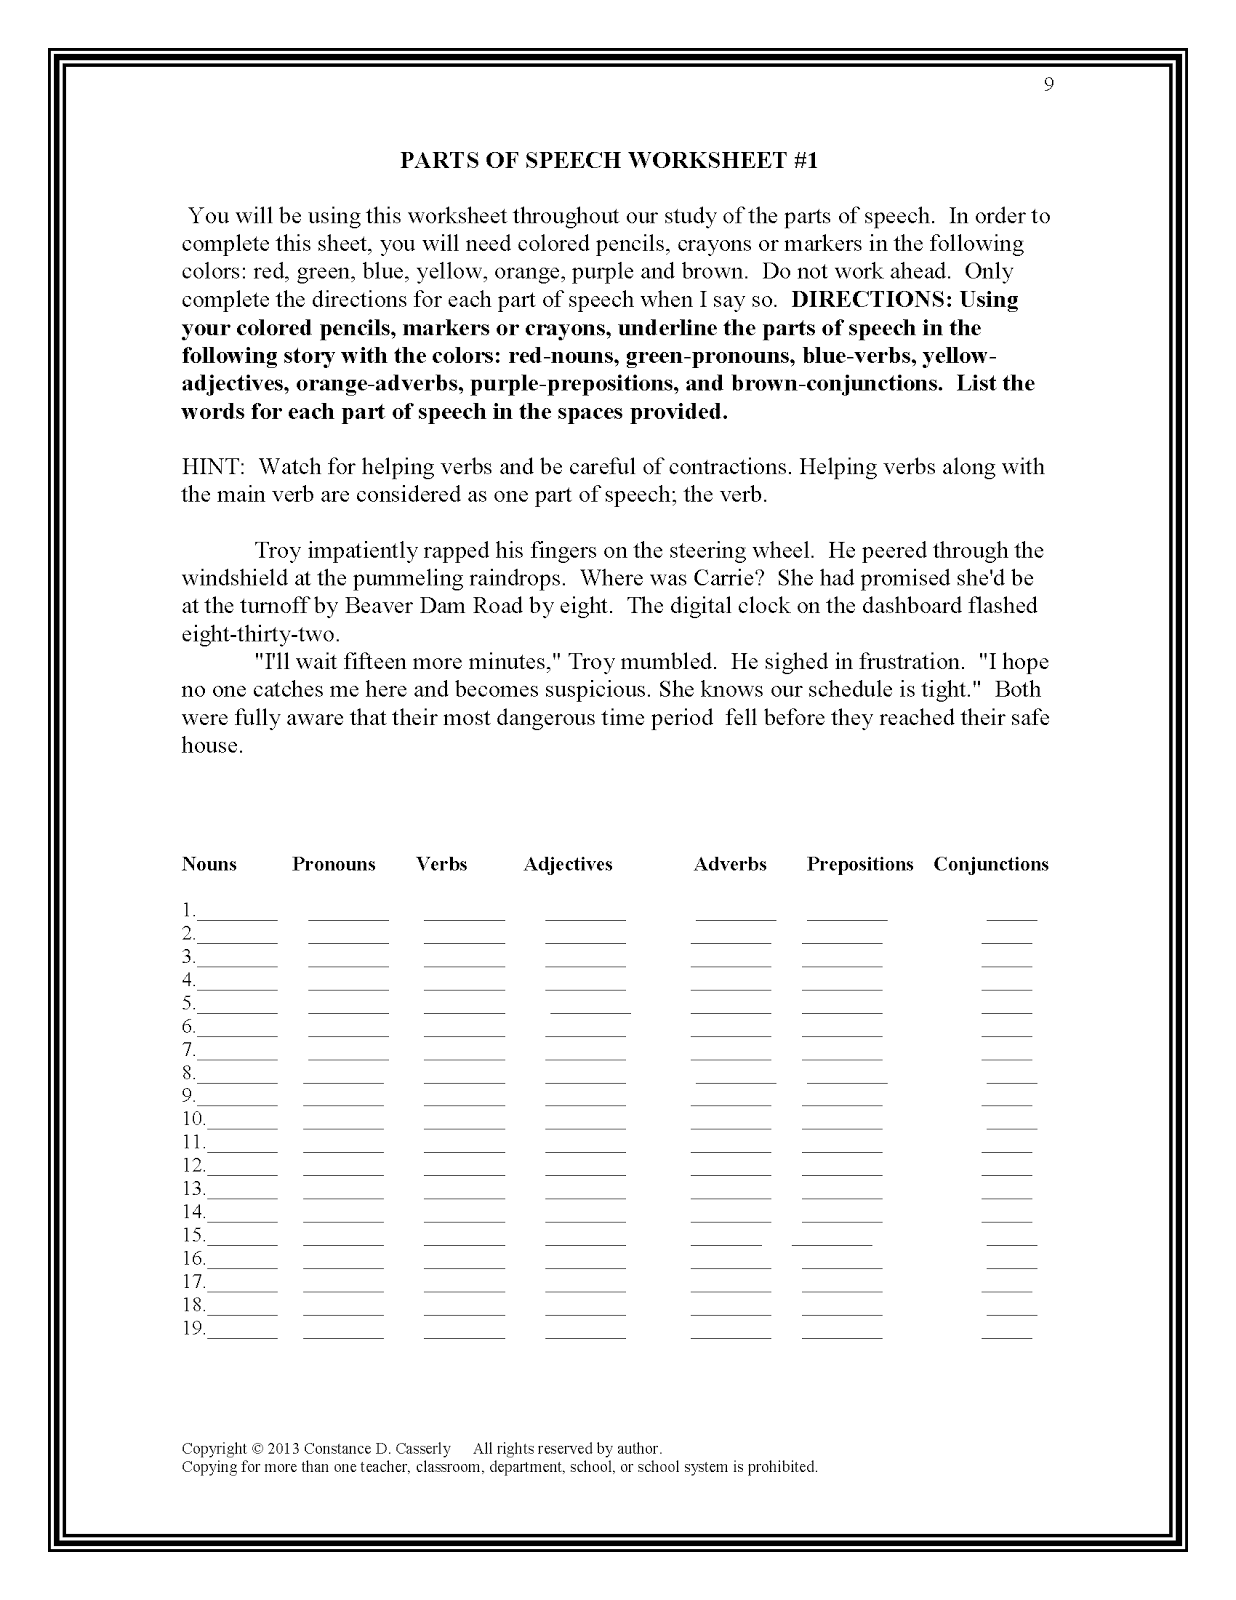 Printables Parts Of Speech Worksheets For High School teach it write students wont grumble over these grammar grapplers middle and high school ela lesson plans parts of speech activity